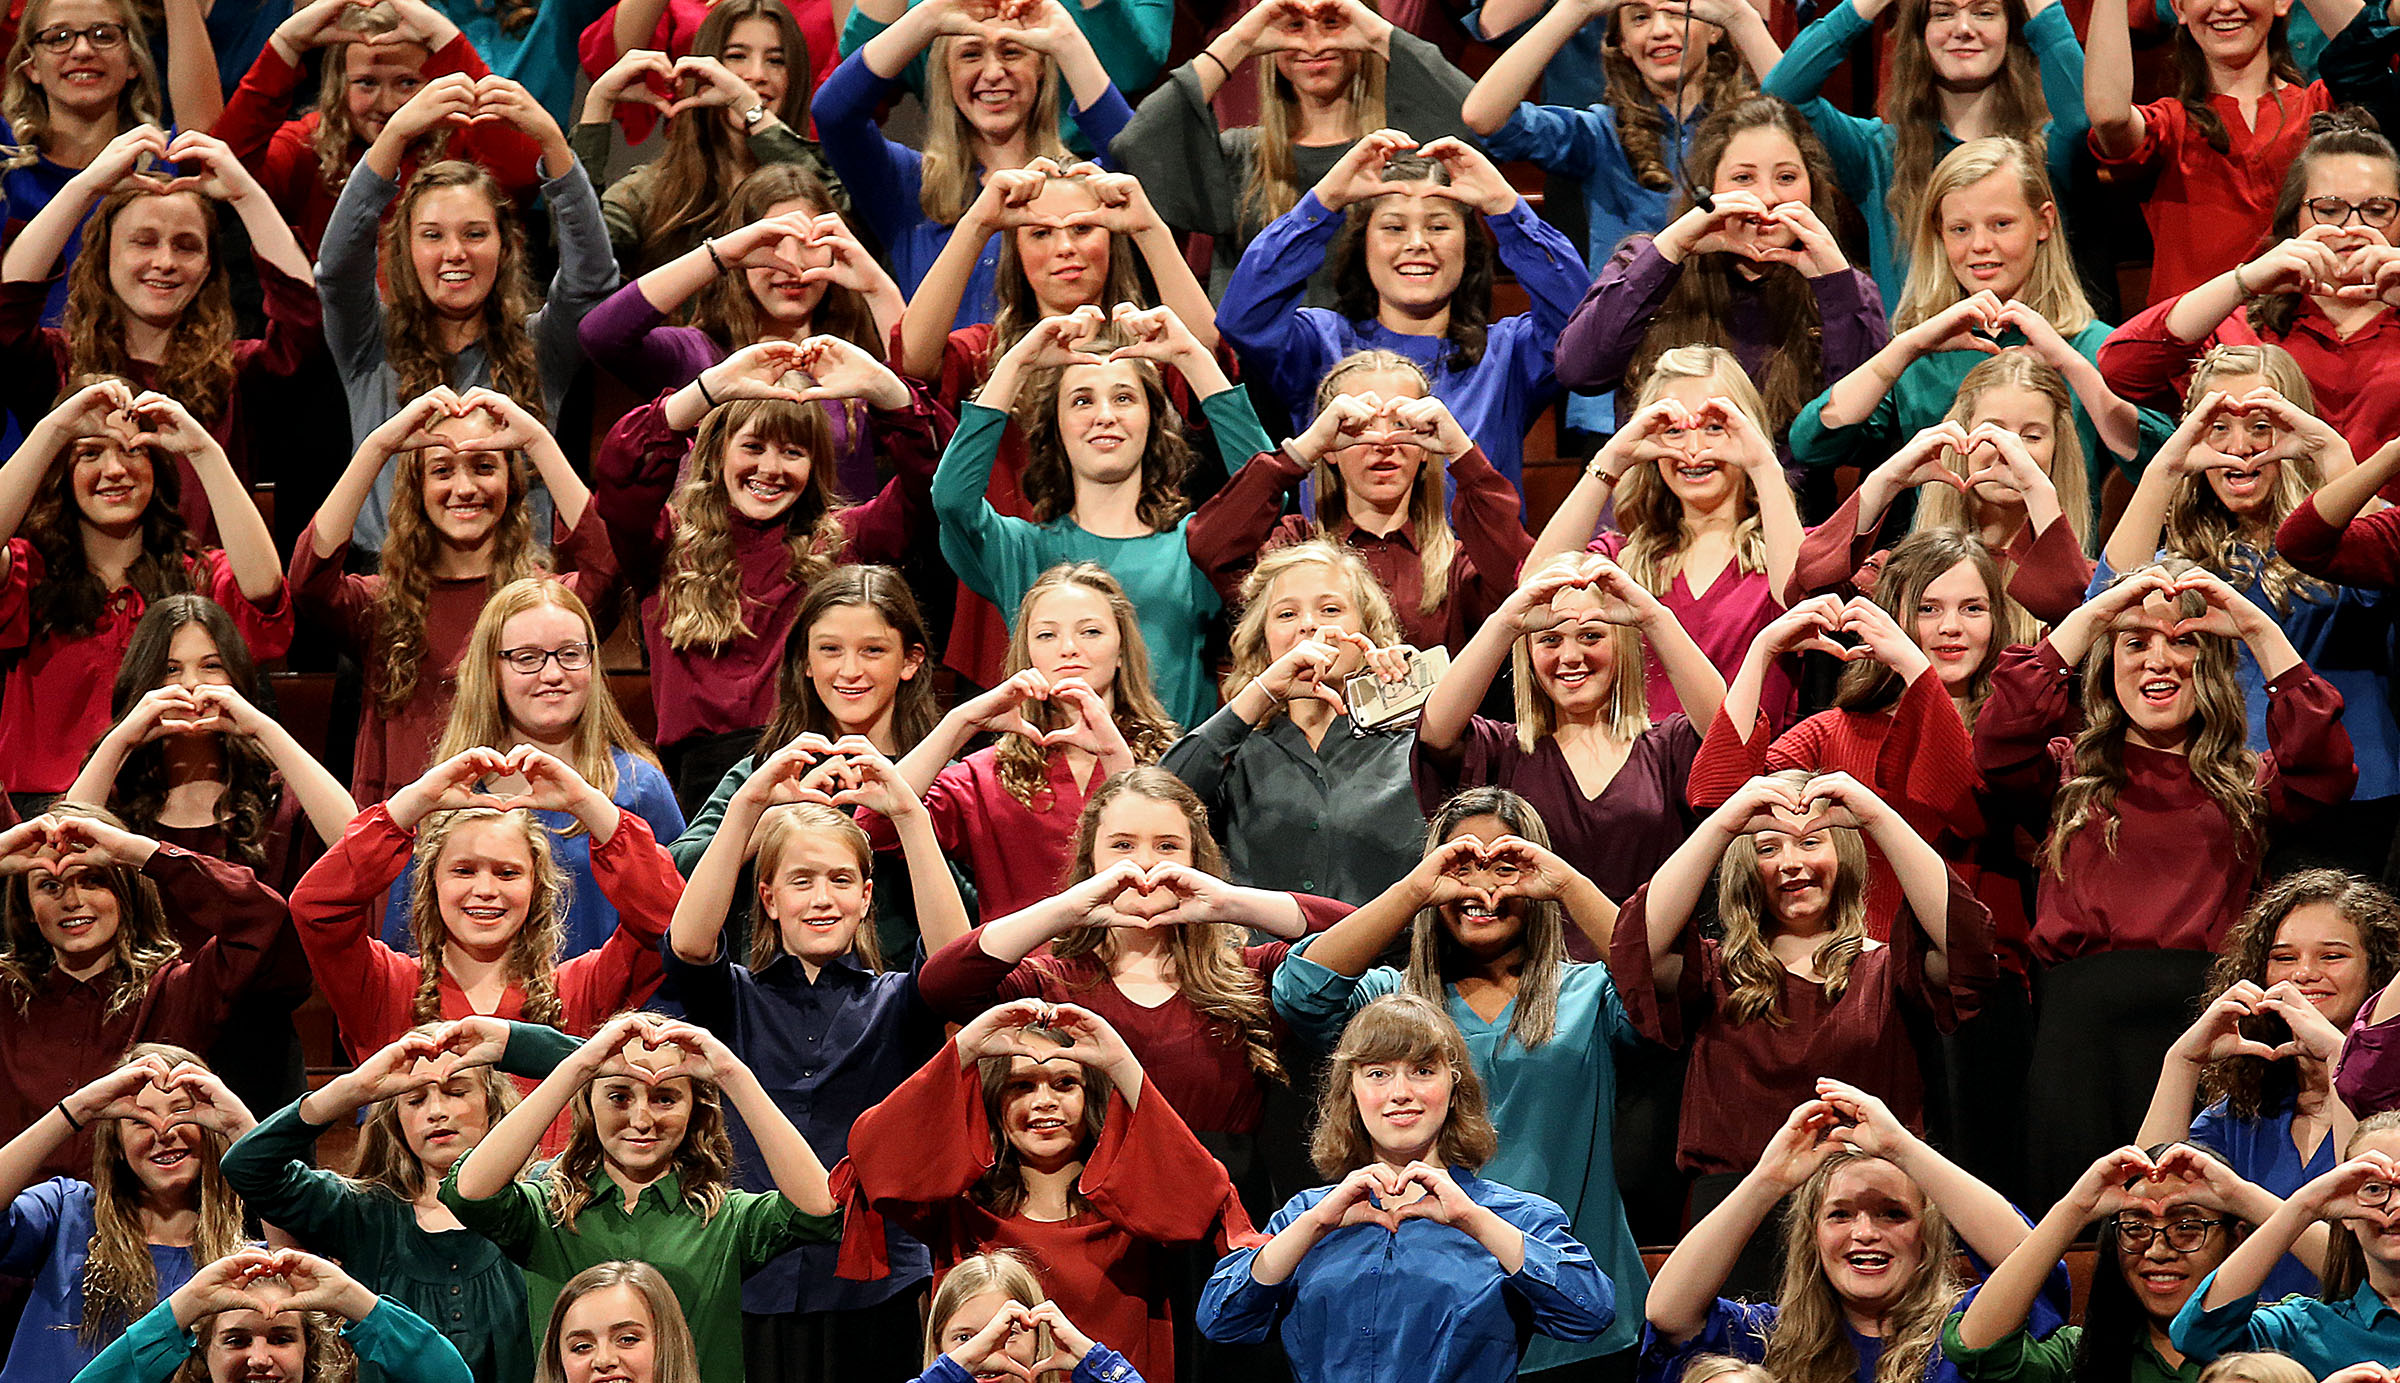 Members of the Young Women choir from stakes in Pleasant Grove form hearts with their hands as President Russell M. Nelson leaves the general women's session of the 188th Semiannual General Conference of The Church of Jesus Christ of Latter-day Saints held in the Conference Center in downtown Salt Lake City on Saturday, Oct. 6, 2018.